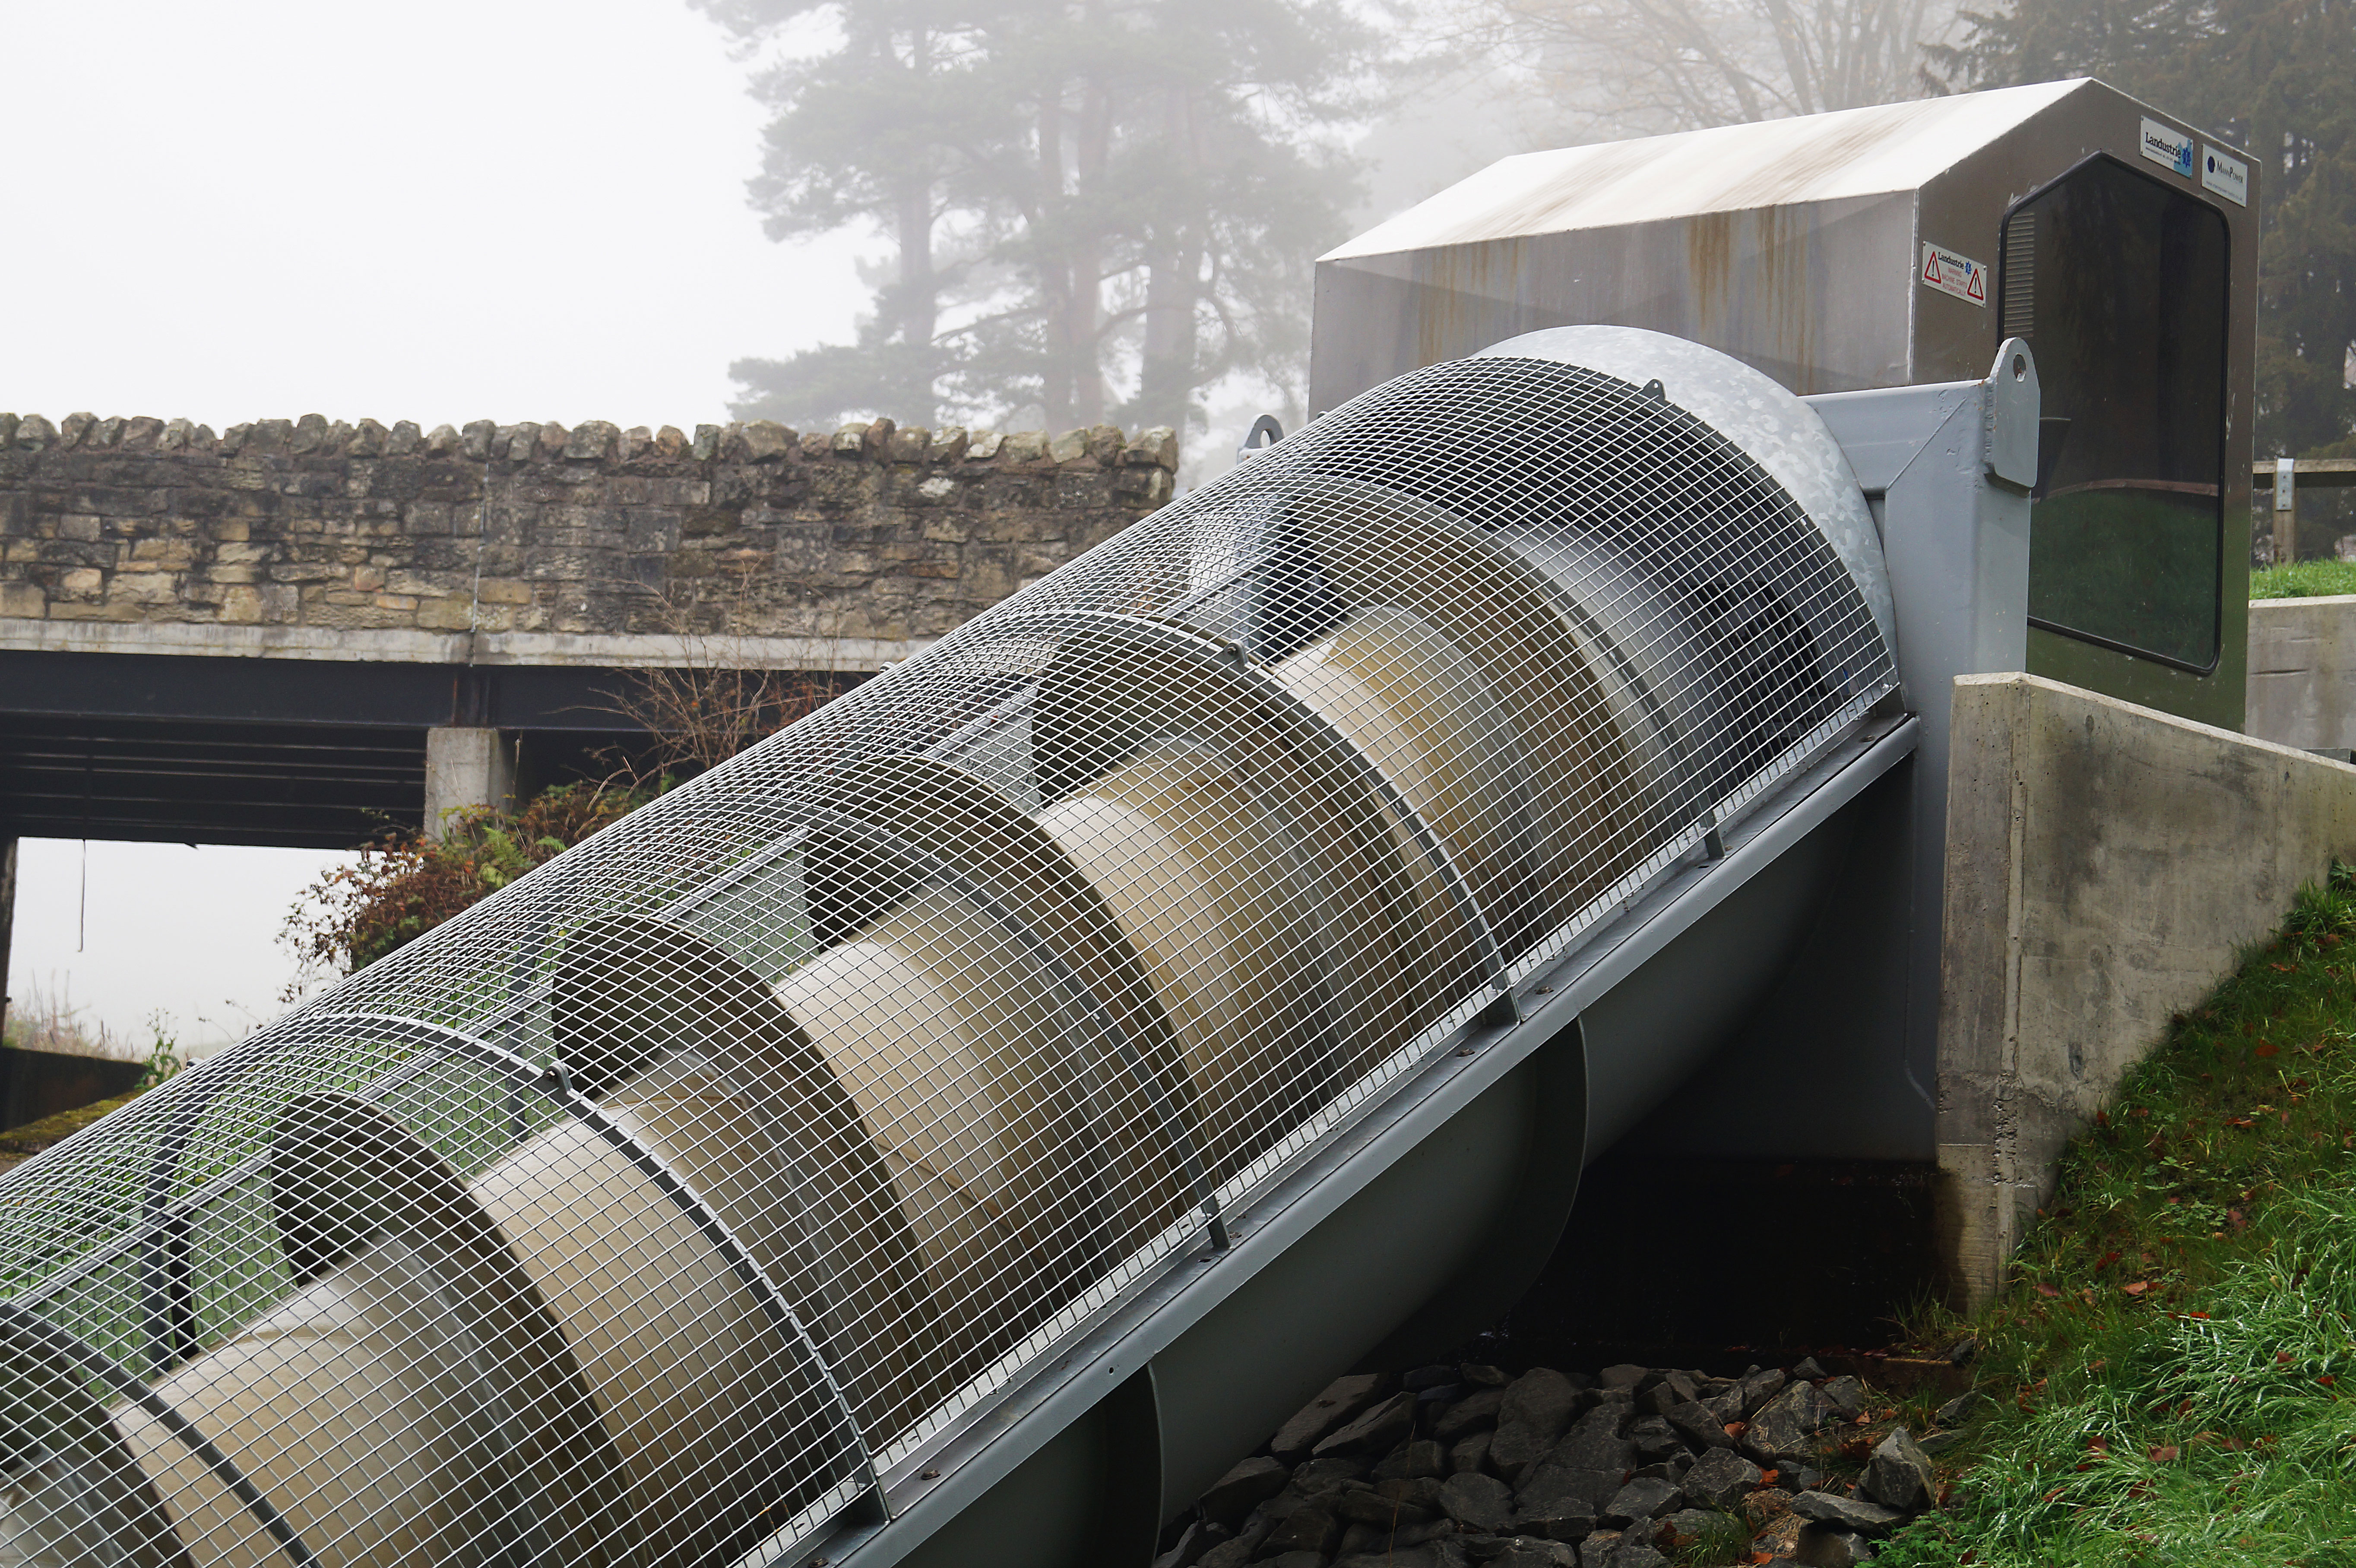 A history of innovation at Cragside continues with hydro-electric power from WEG